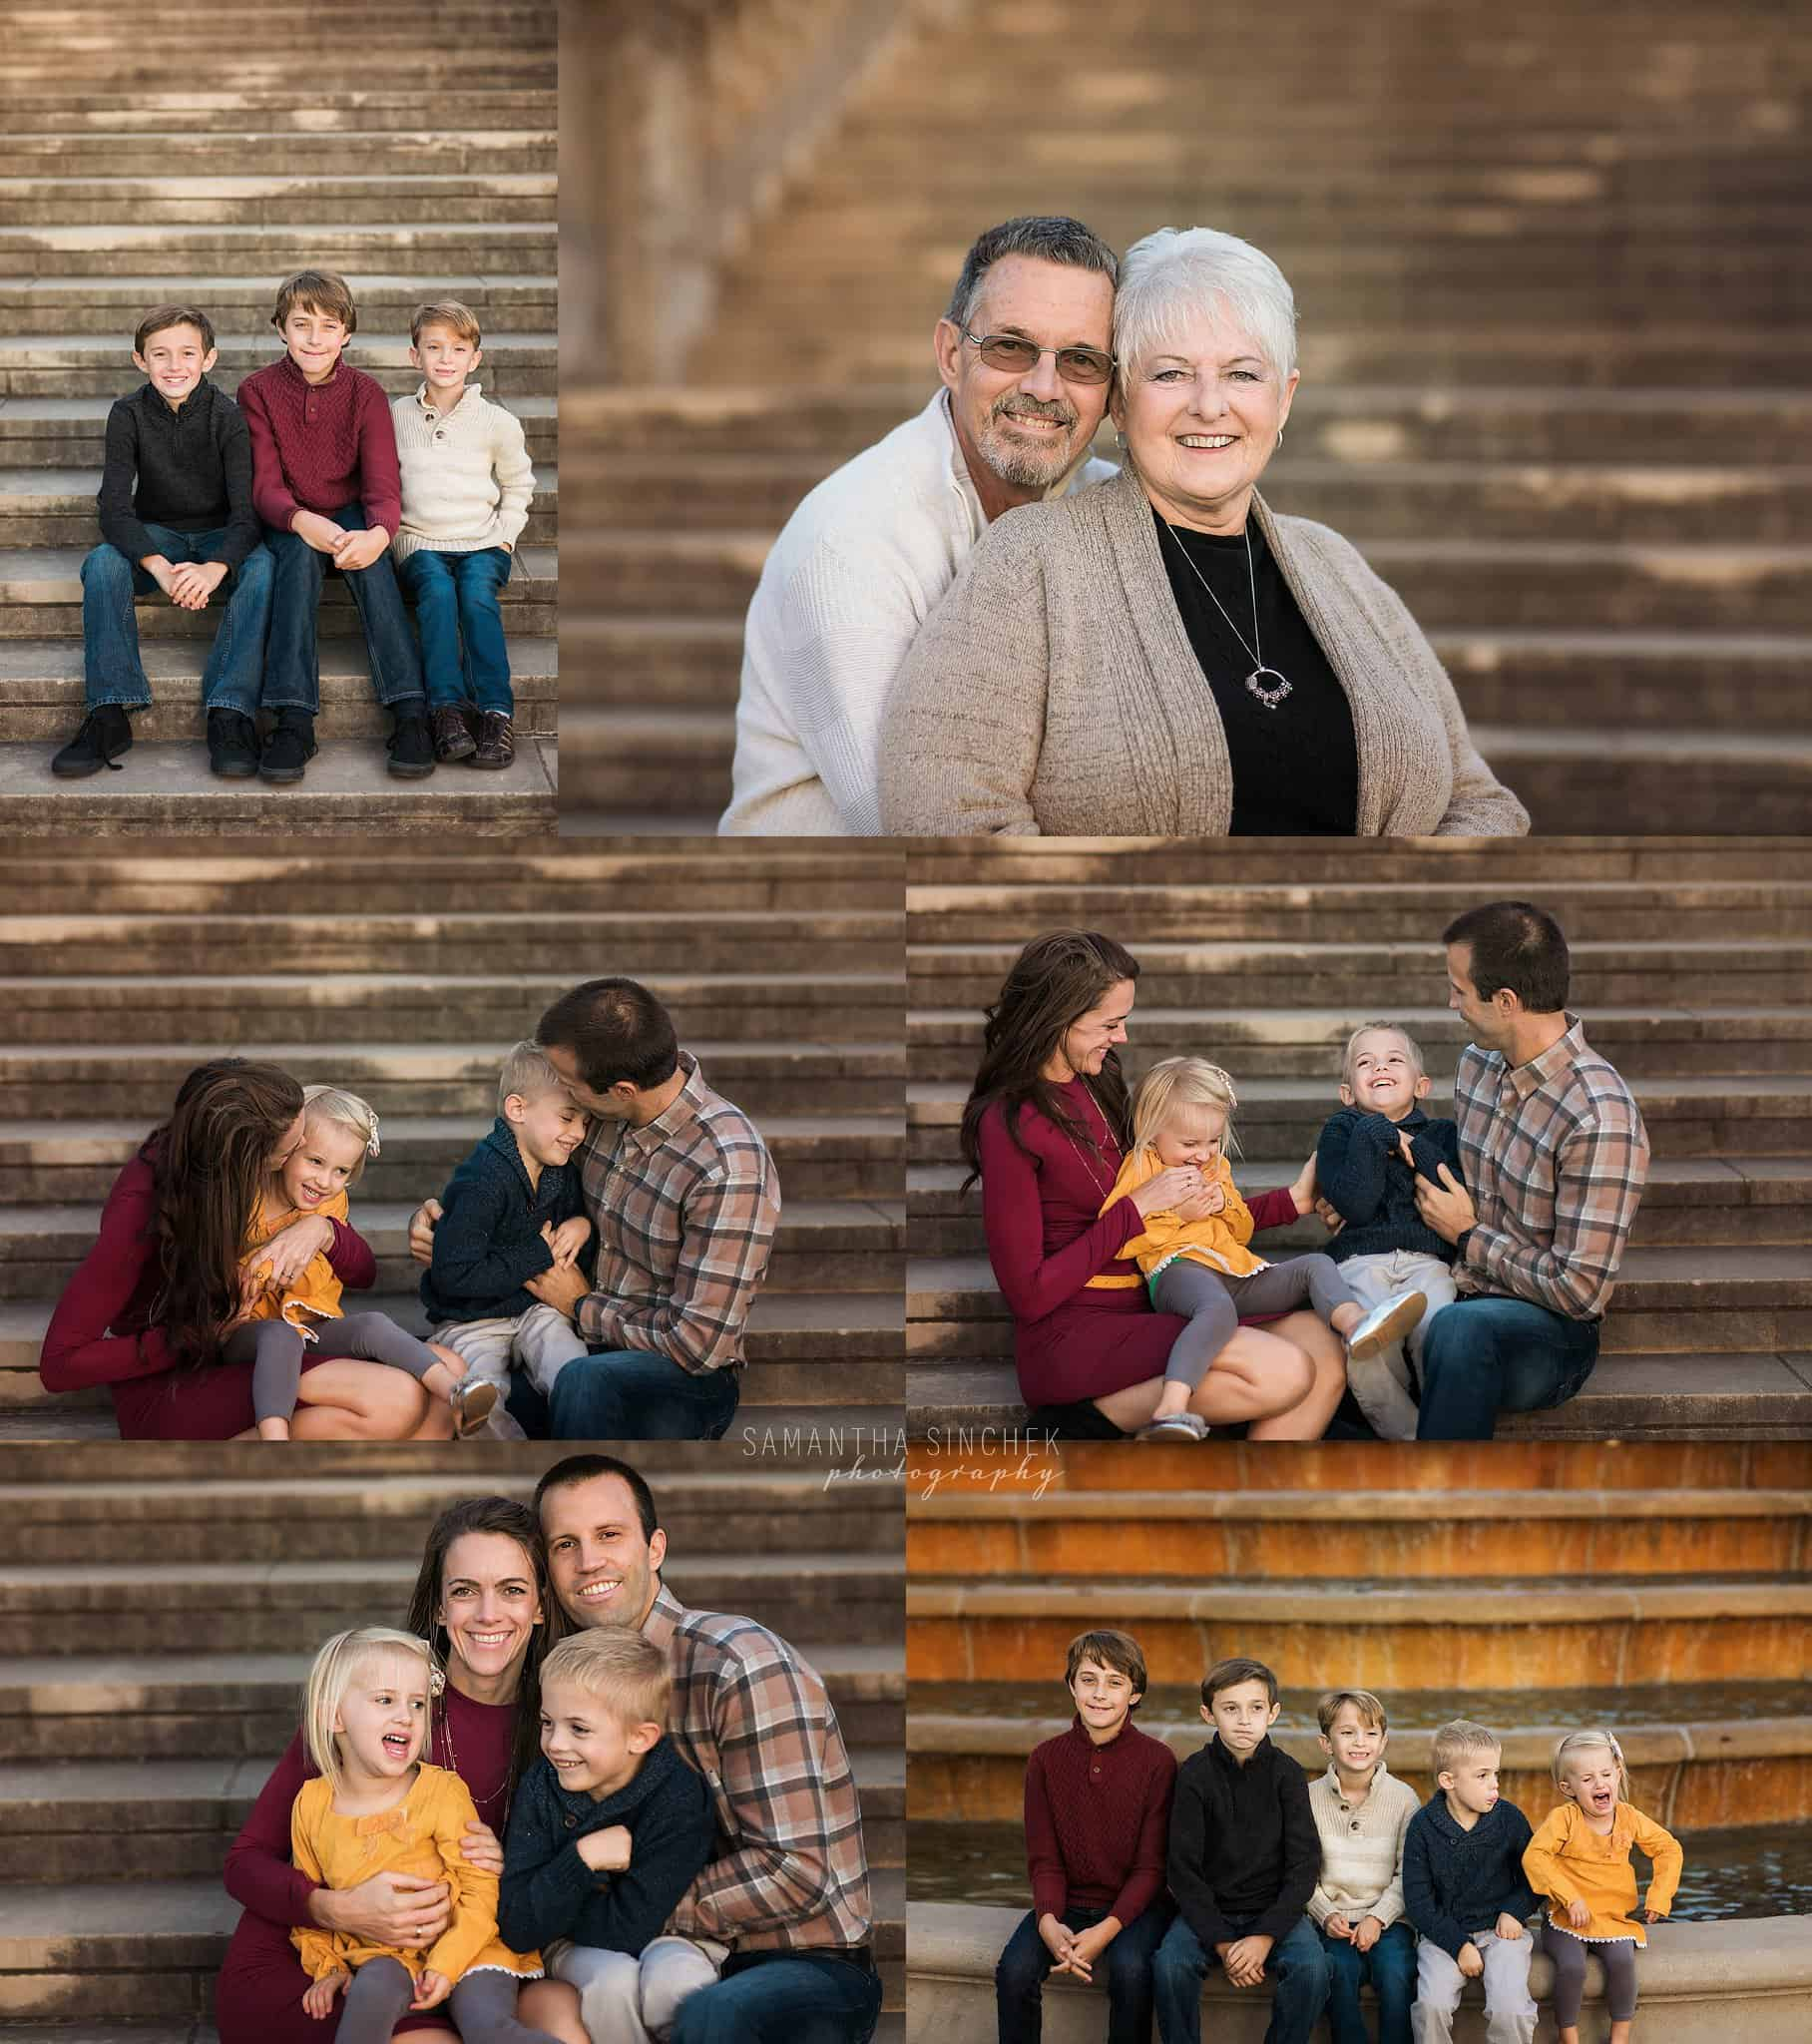 extended family session with Samantha Sinchek cincinnati photographer on stairs at Ault park